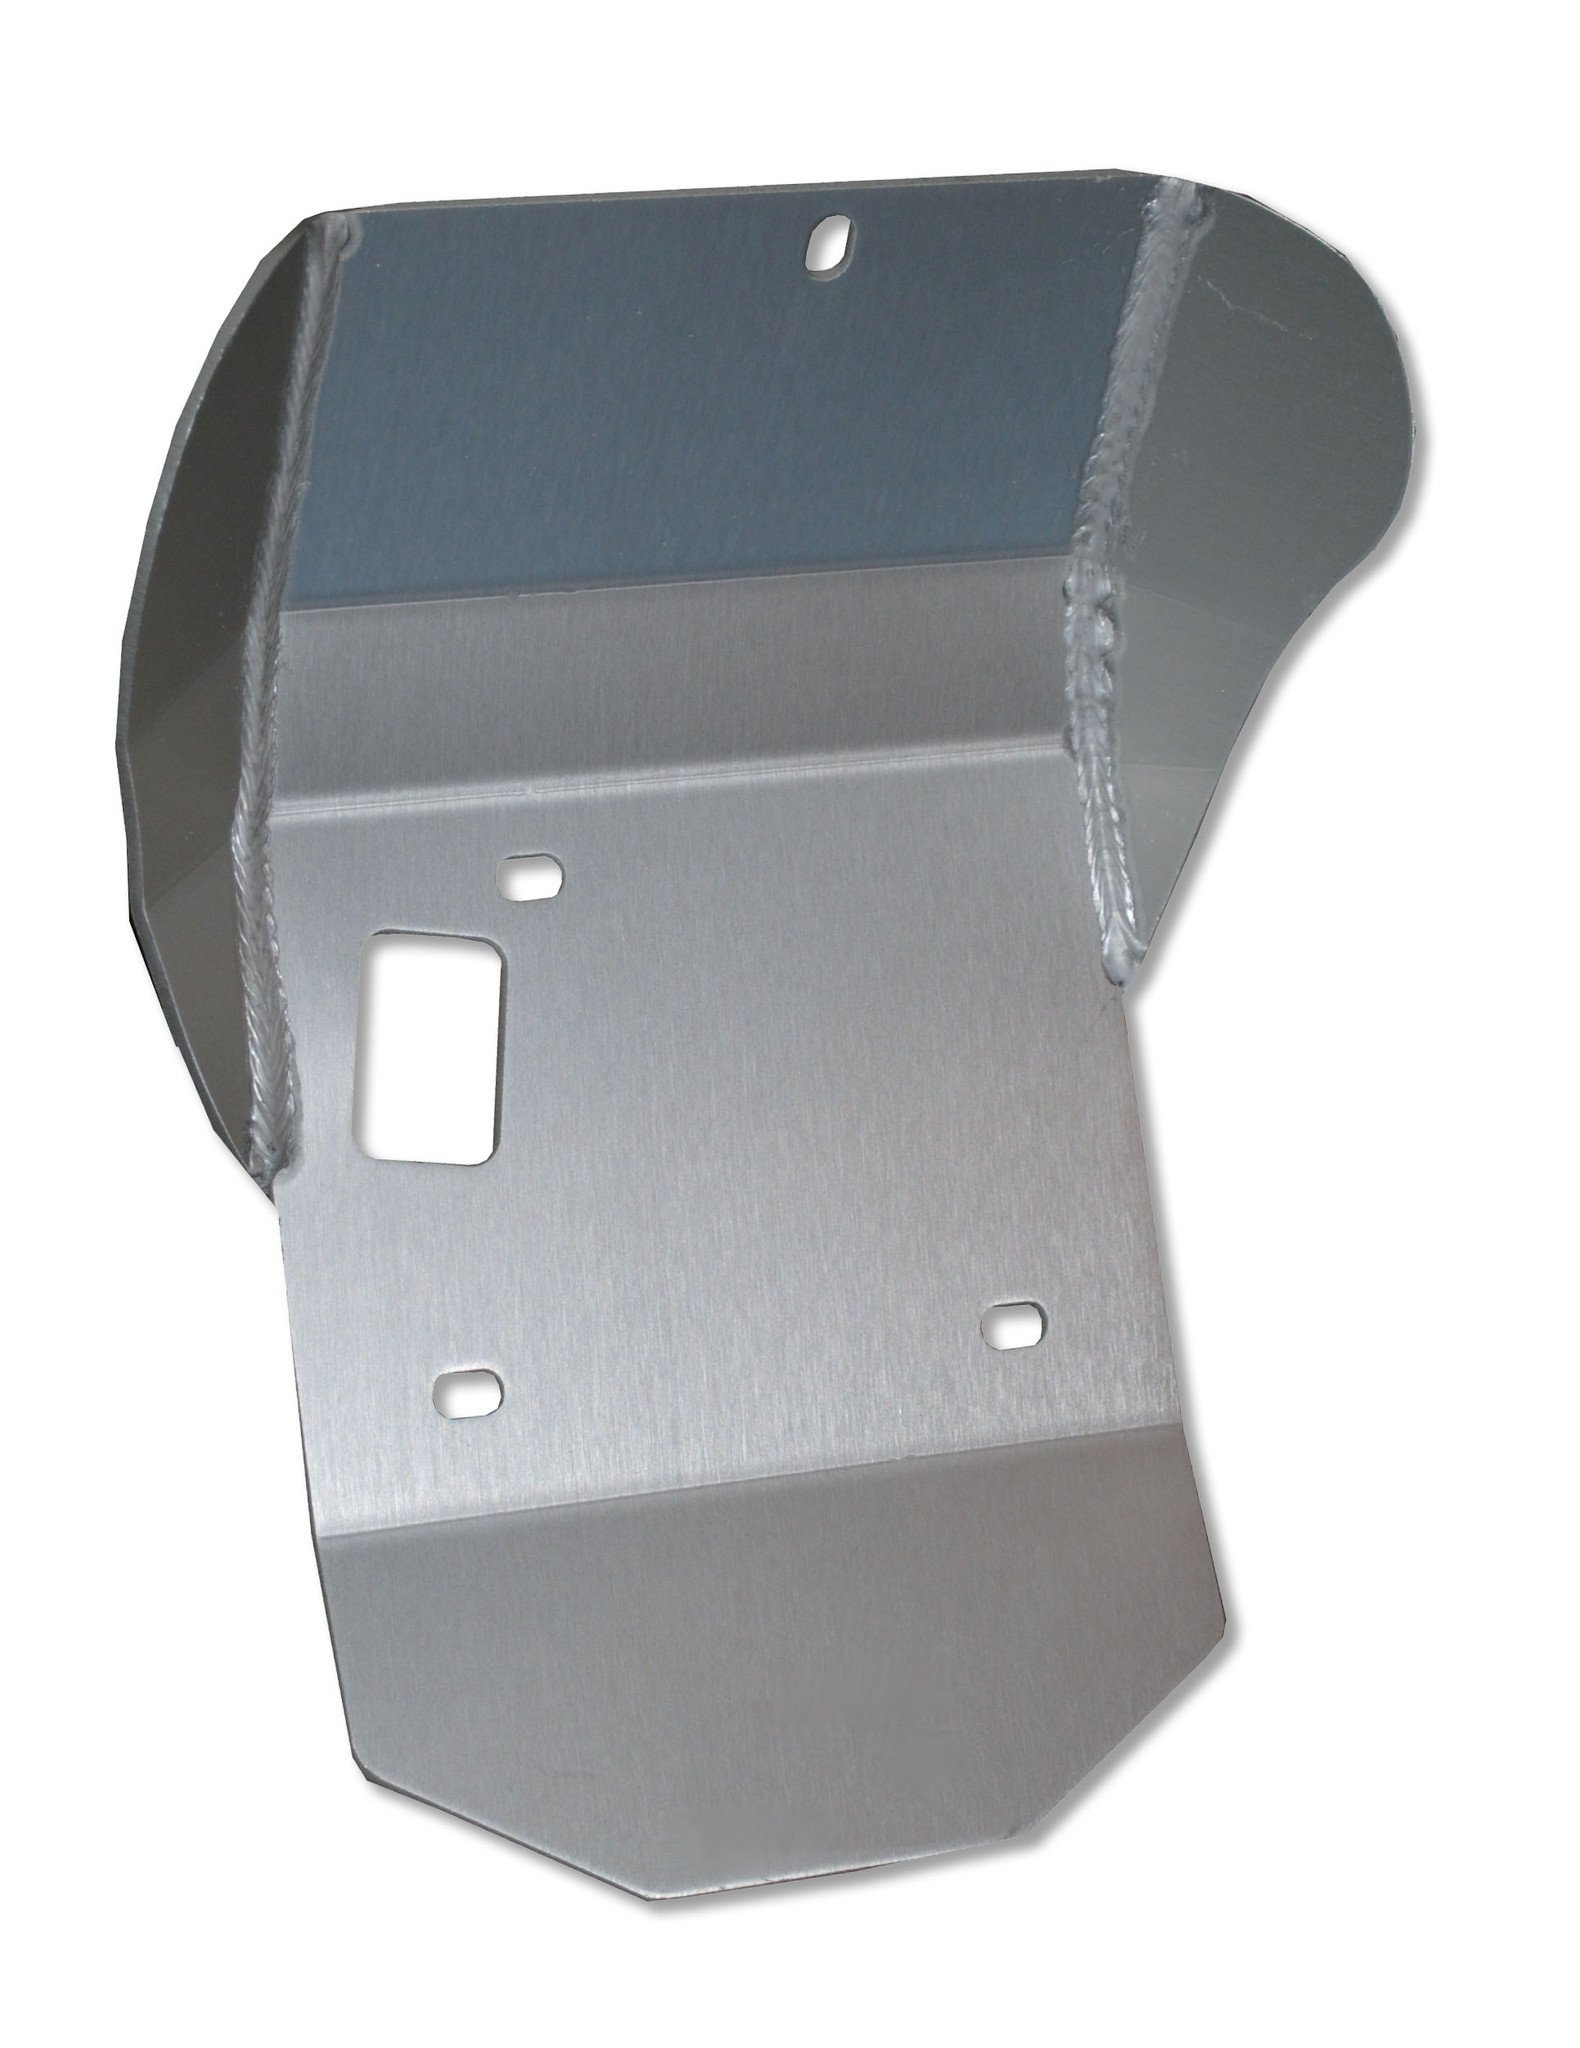 Honda CRF230L Skid Plate 3/16'' 5052 H-32 Aluminum. Mounting hardware included. by Ricochet for 2008, 2009, 2010, 2011, 2012, 2013, 2014, 2015, 2016, 2017 Model